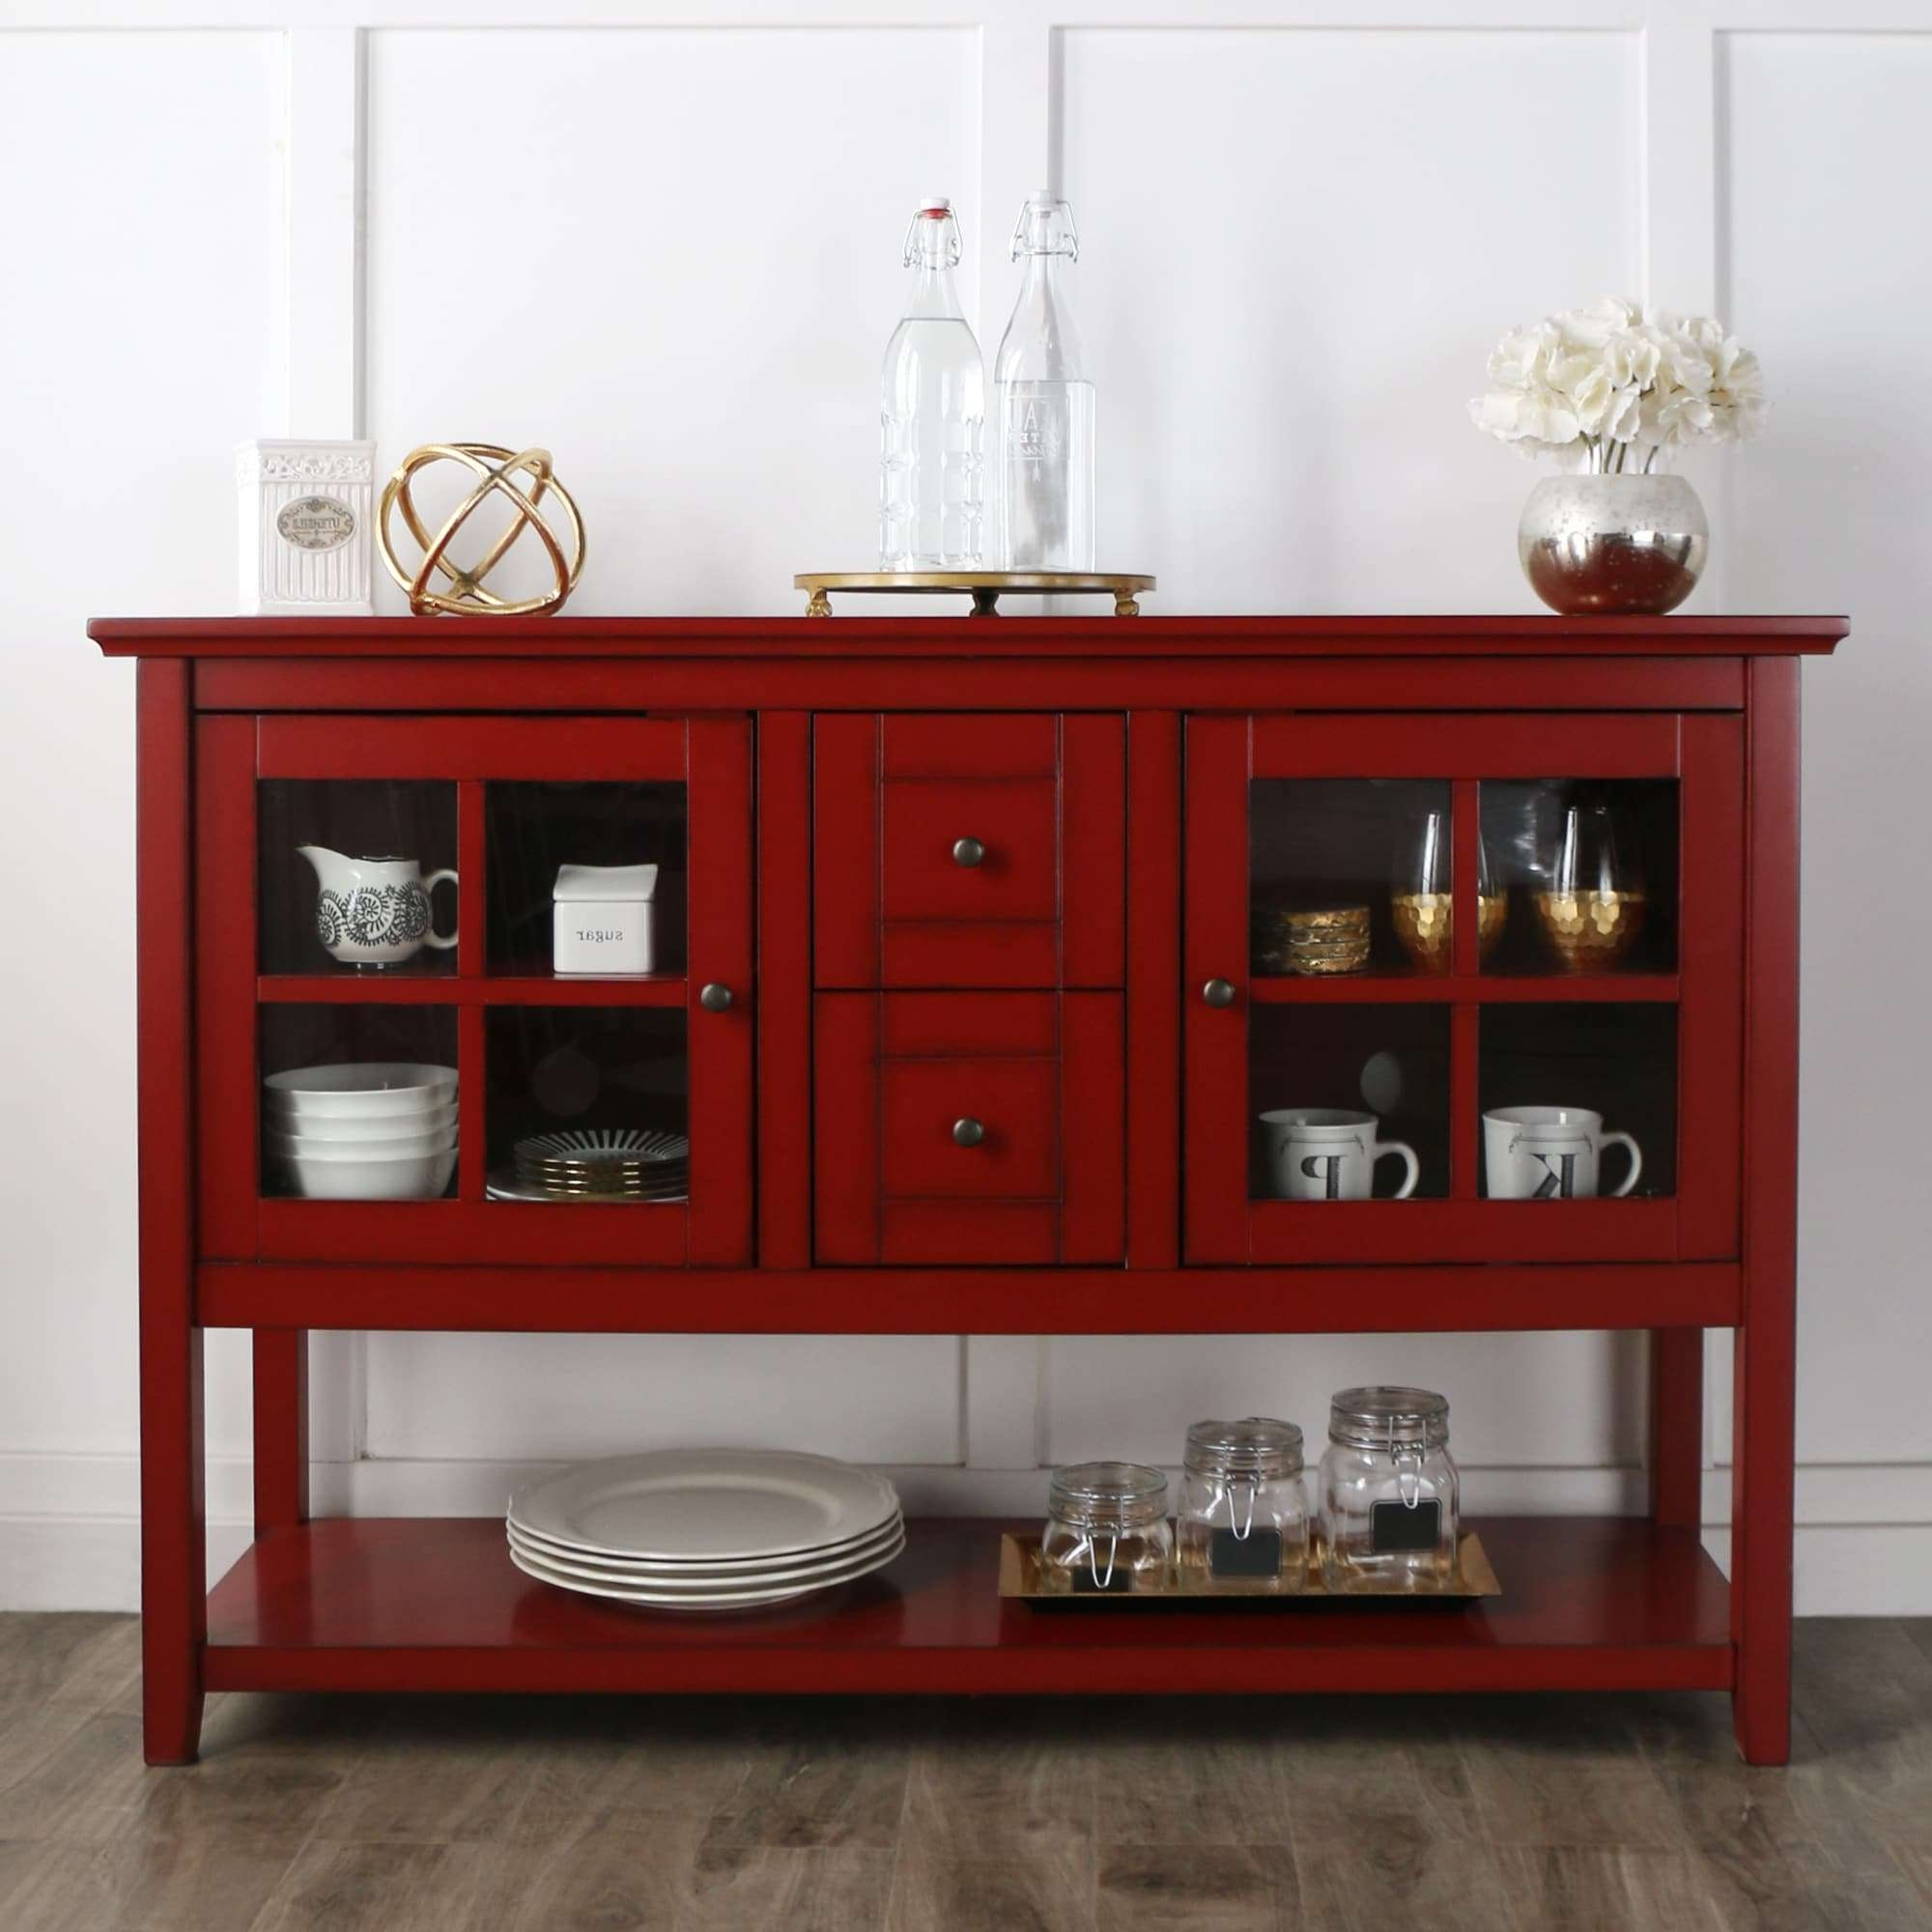 52 Inch Antique Red Wood Console Table/ Buffet – Free Shipping Pertaining To Red Sideboards Buffets (Gallery 11 of 20)